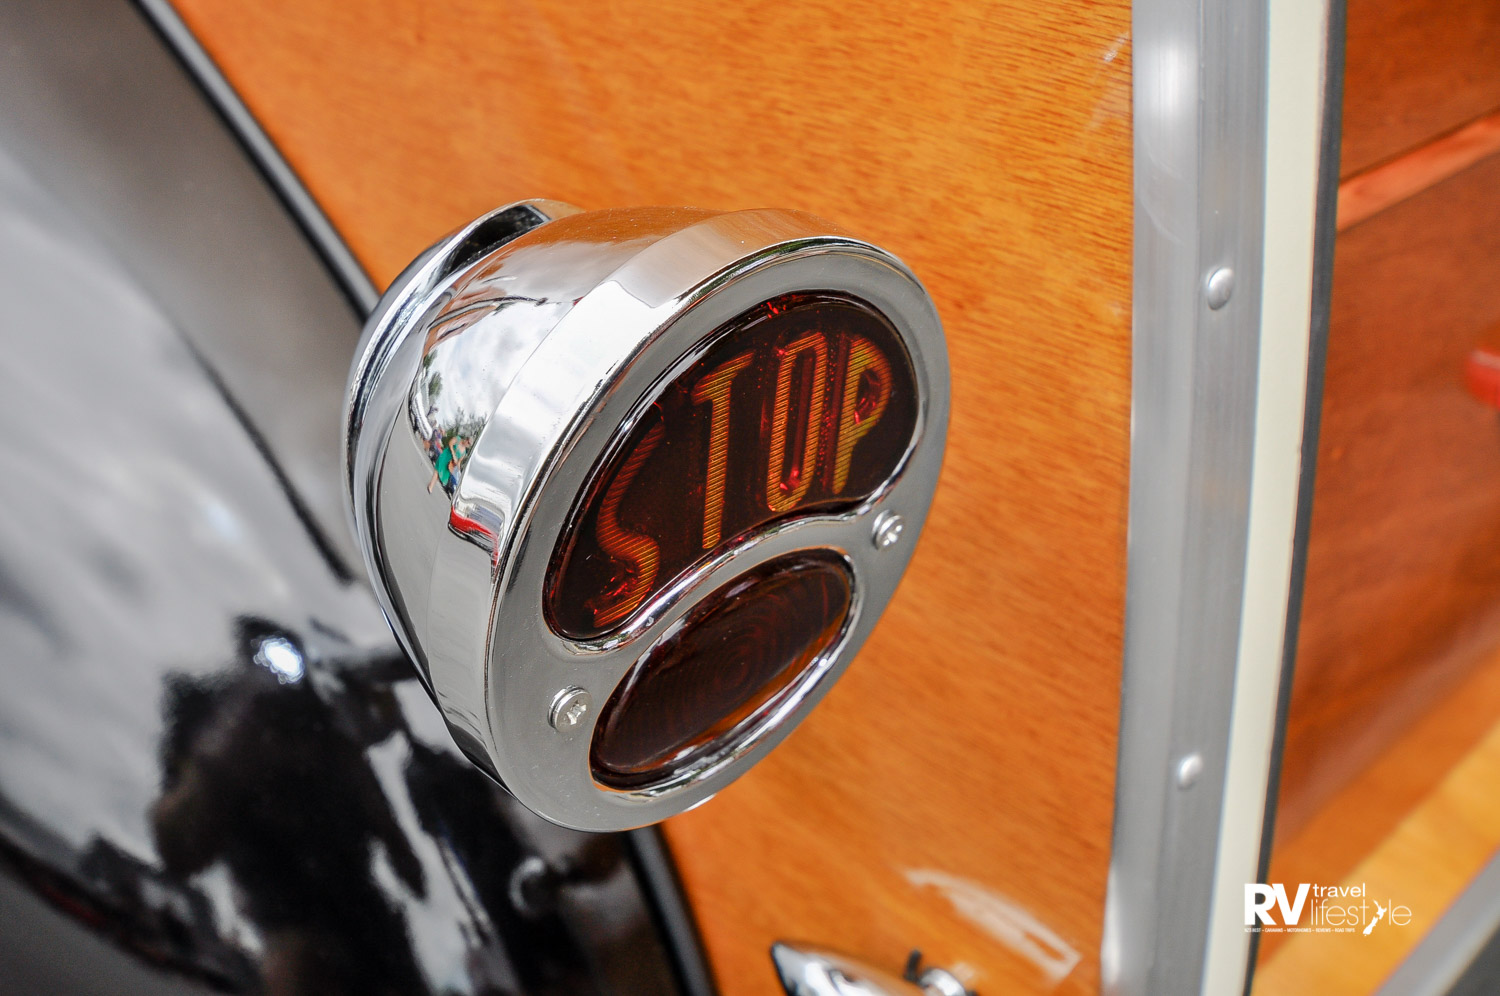 Very cute STOP light sourced and fitted – quirky touches that make these hand-built vehicles so special